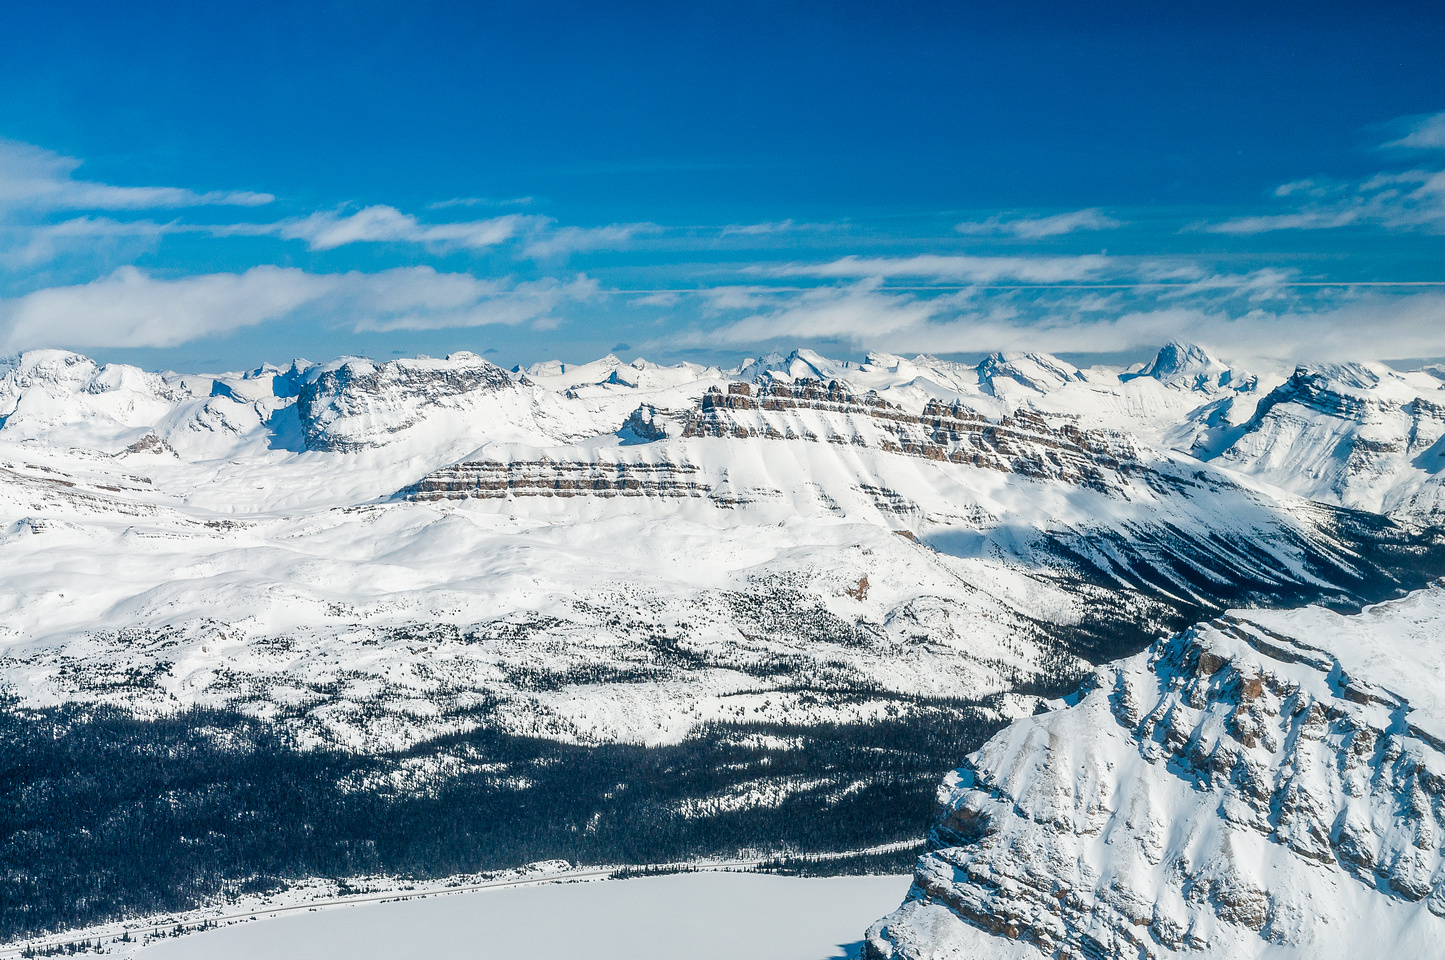 Looking over Dolomite Peak towards Cataract Peak (R) and Puzzle (L).